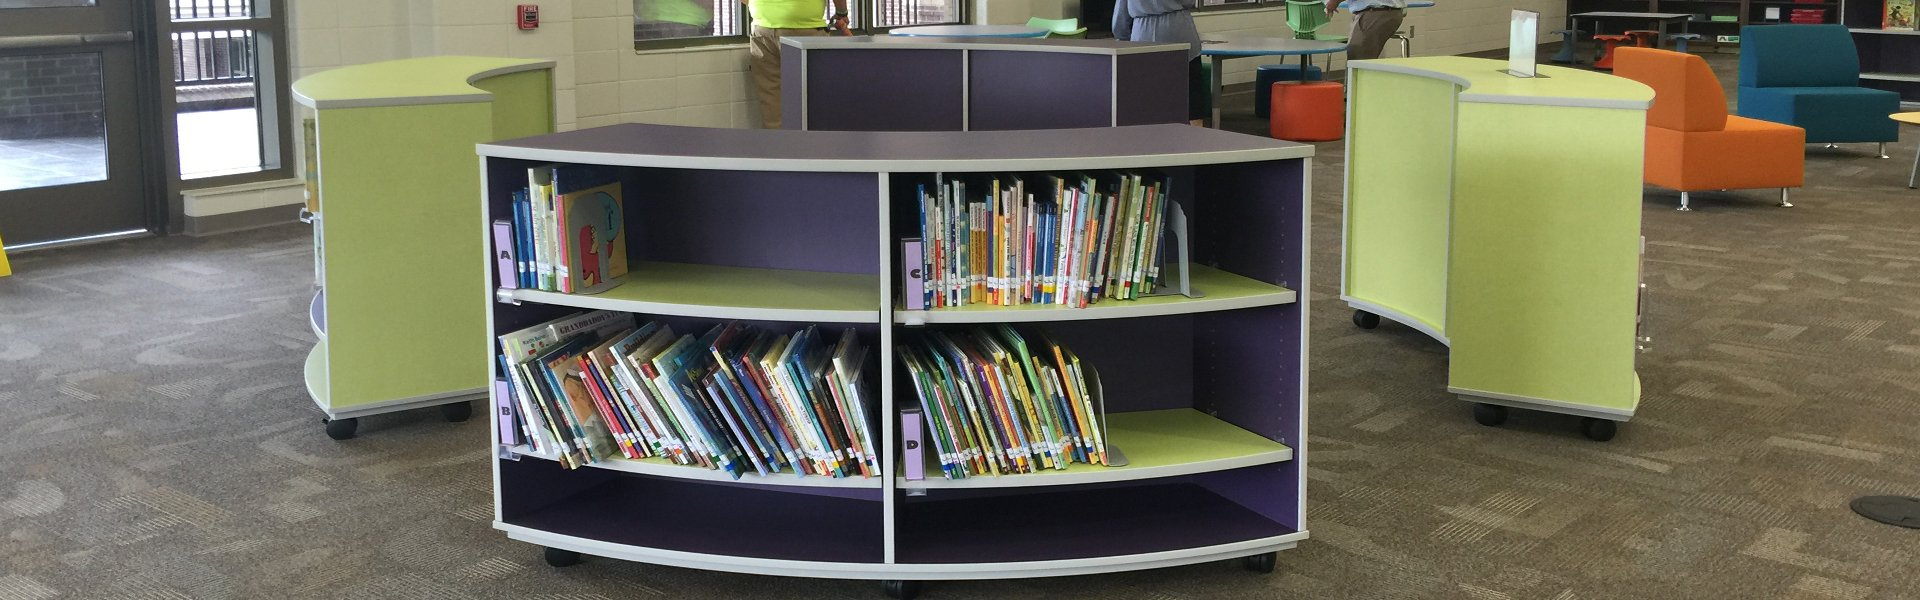 Corilam Library Curved Bookcase